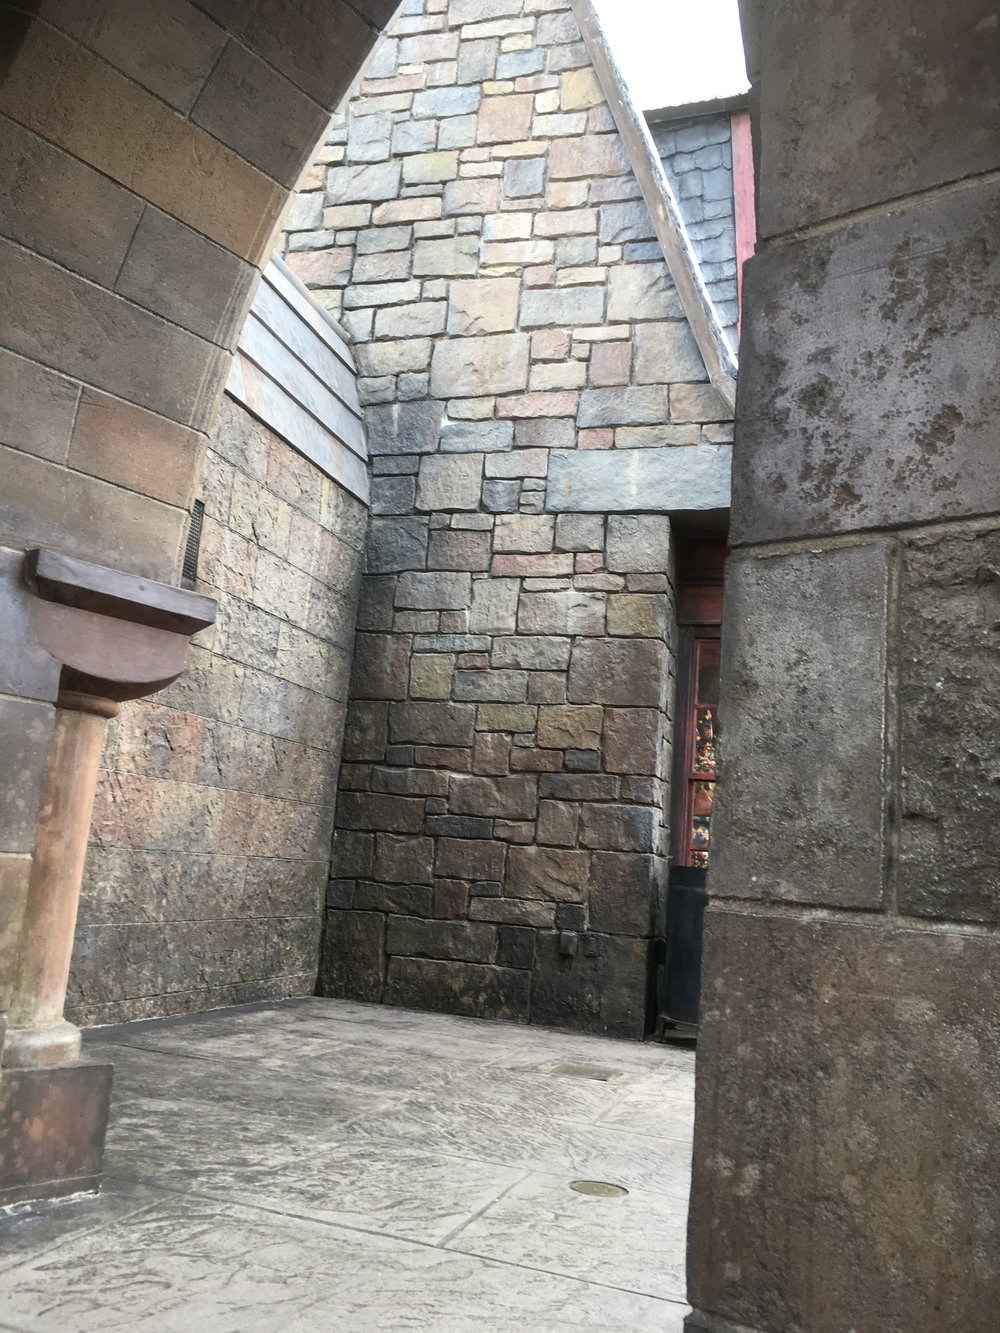 This is in Hogsmeade, the archway where we've begun a tradition of sitting underneath while I enjoy some pumpkin juice and stuff my face with a Cauldron Cake.